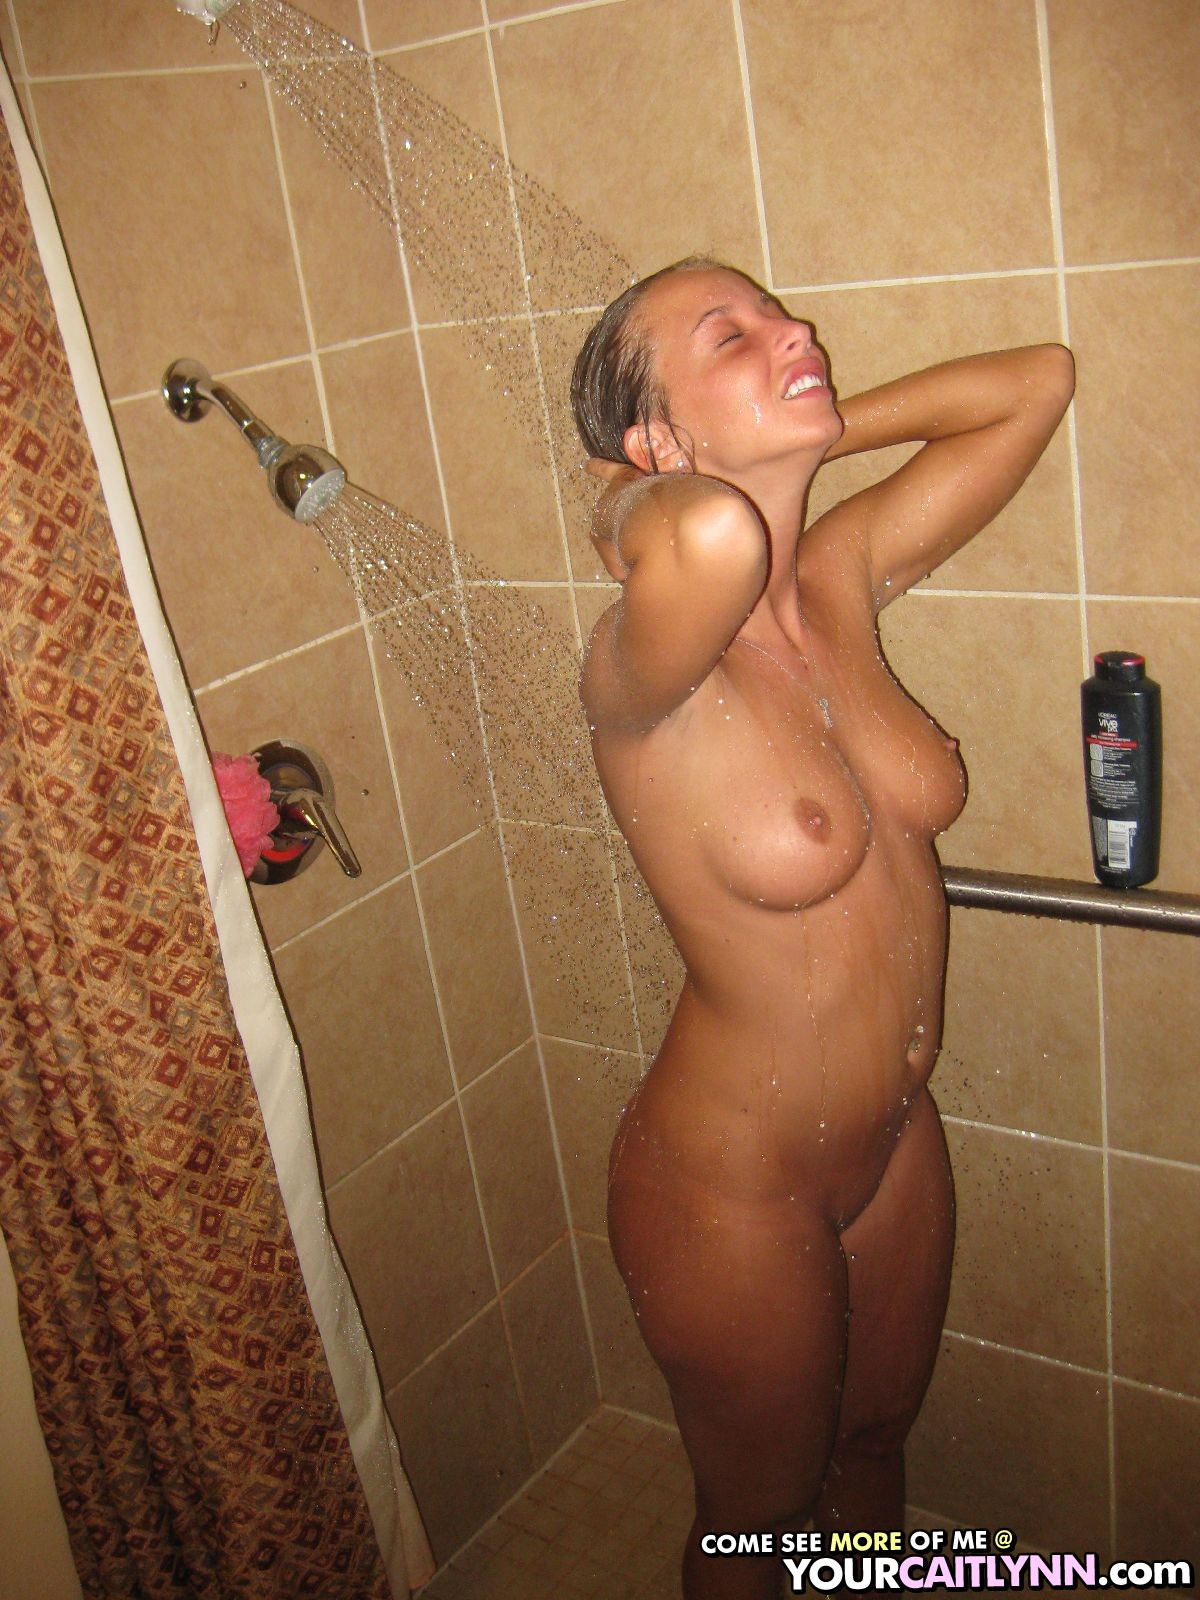 Seduced for sex by older woman